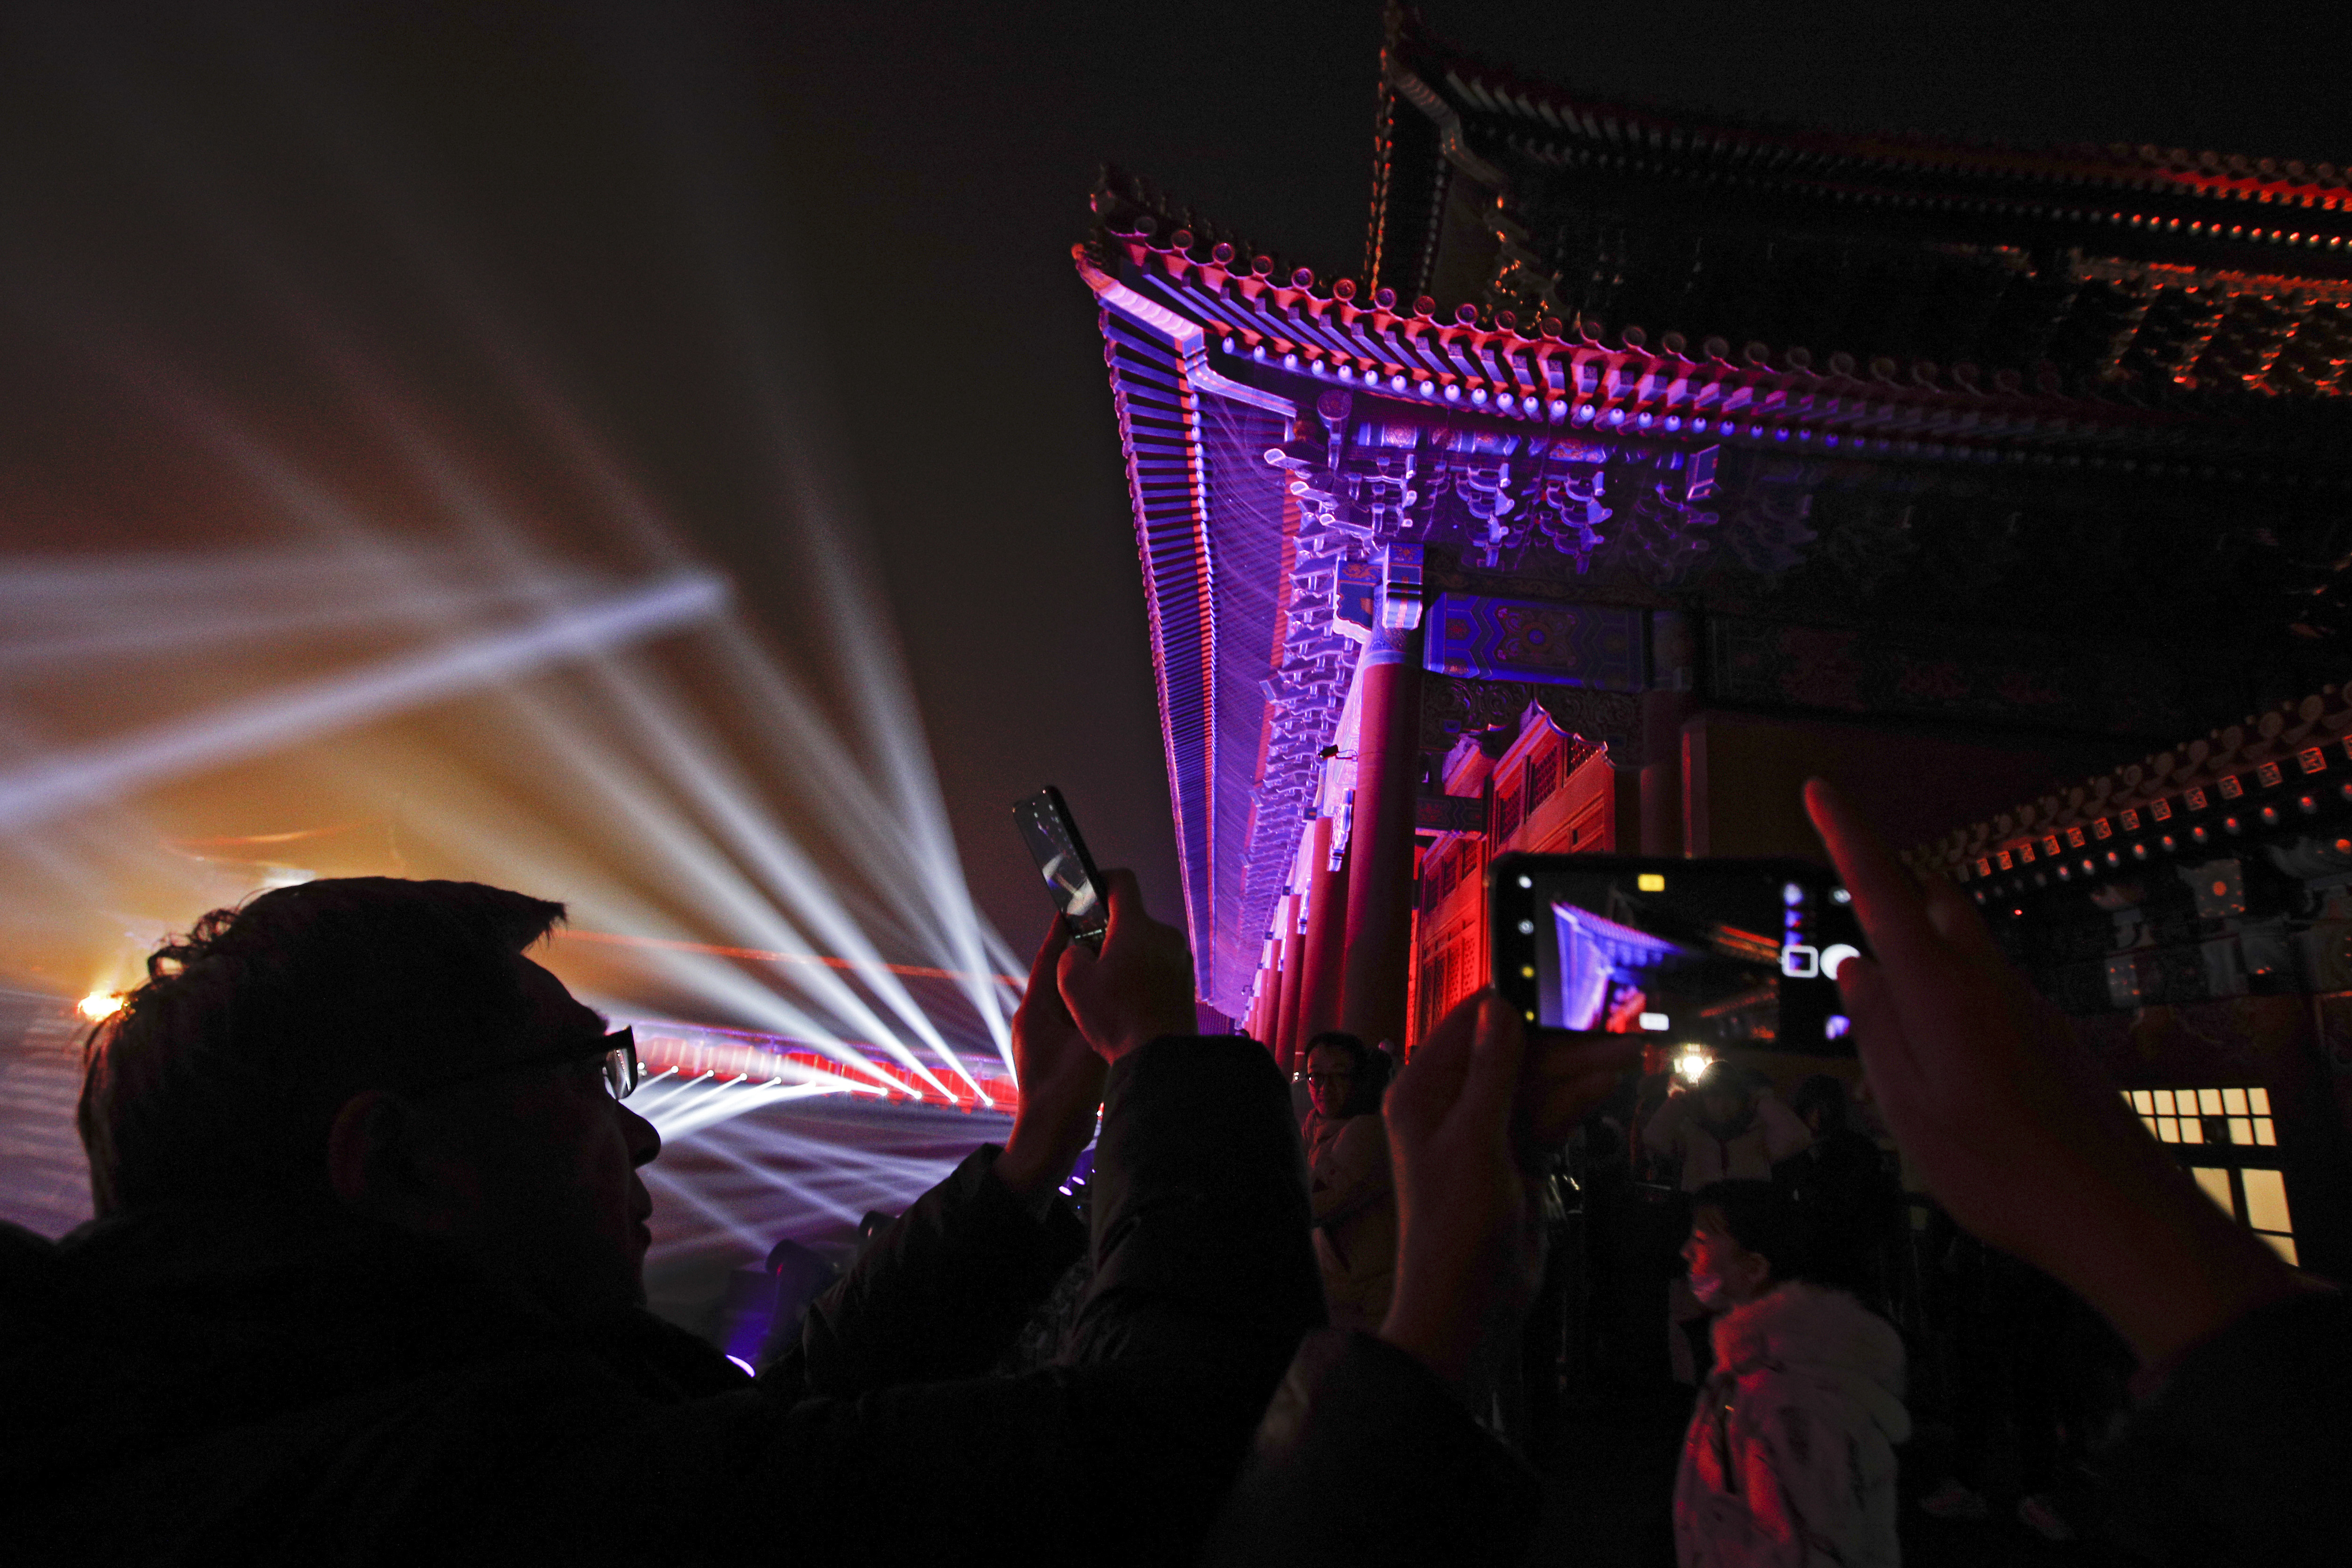 Visitors take souvenir photos of the Forbidden City illuminated with lights during the Lantern Festival in Beijing, Tuesday, Feb. 19, 2019. Beijing's Palace Museum was illuminated and opened for night visits to celebrate China's Lantern Festival. For the first time since it was established 94 years ago, the Palace Museum, also known as the Forbidden City, extended opening hours till nighttime and lit up part of its cultural relics buildings. (AP Photo/Andy Wong)